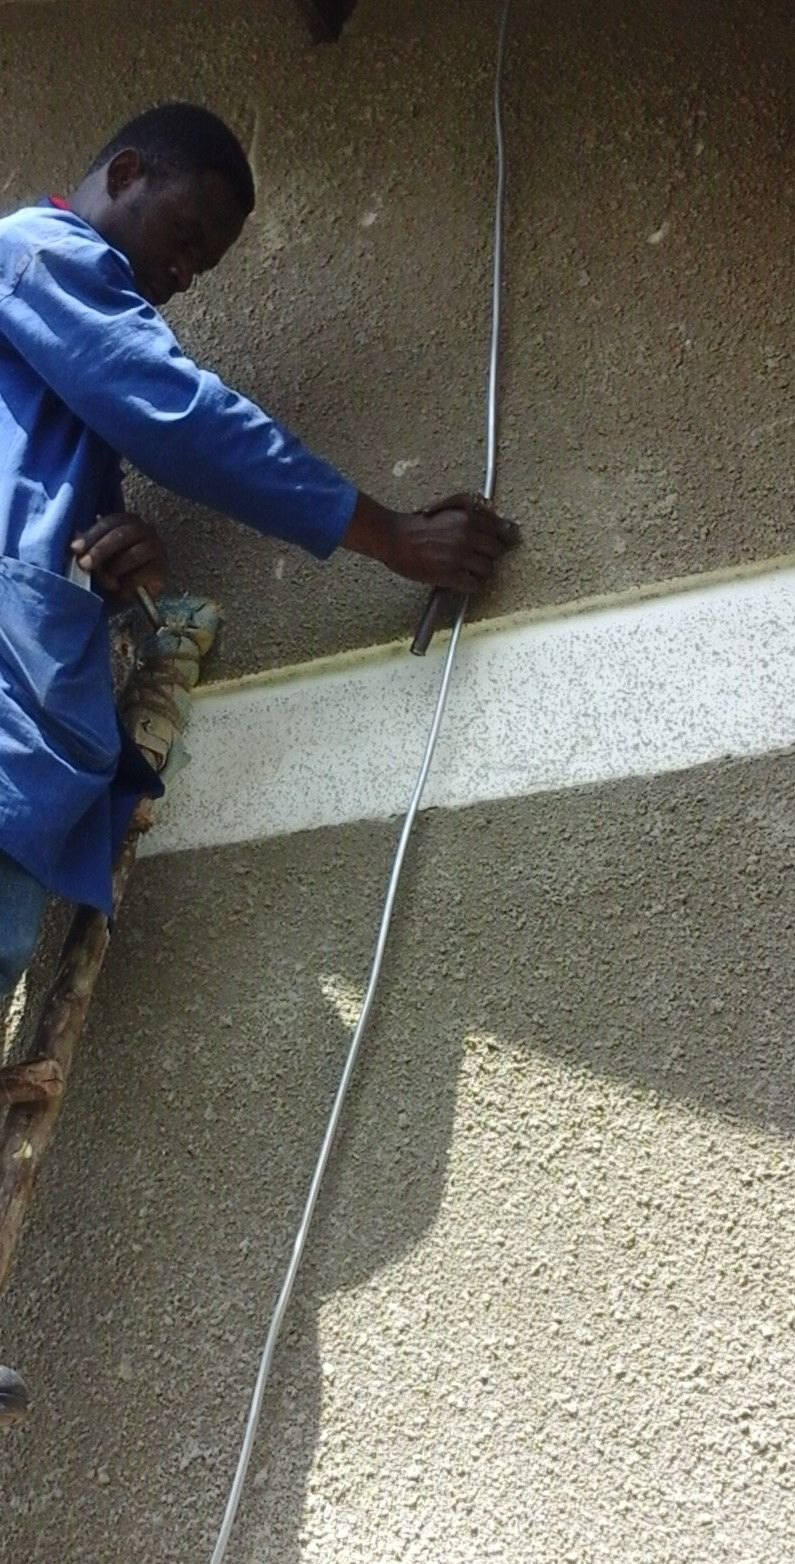 Installing down-conductors which carry lightning current from the lightning rods harmlessly to the earthing/grounding rings buried in trenches around each building